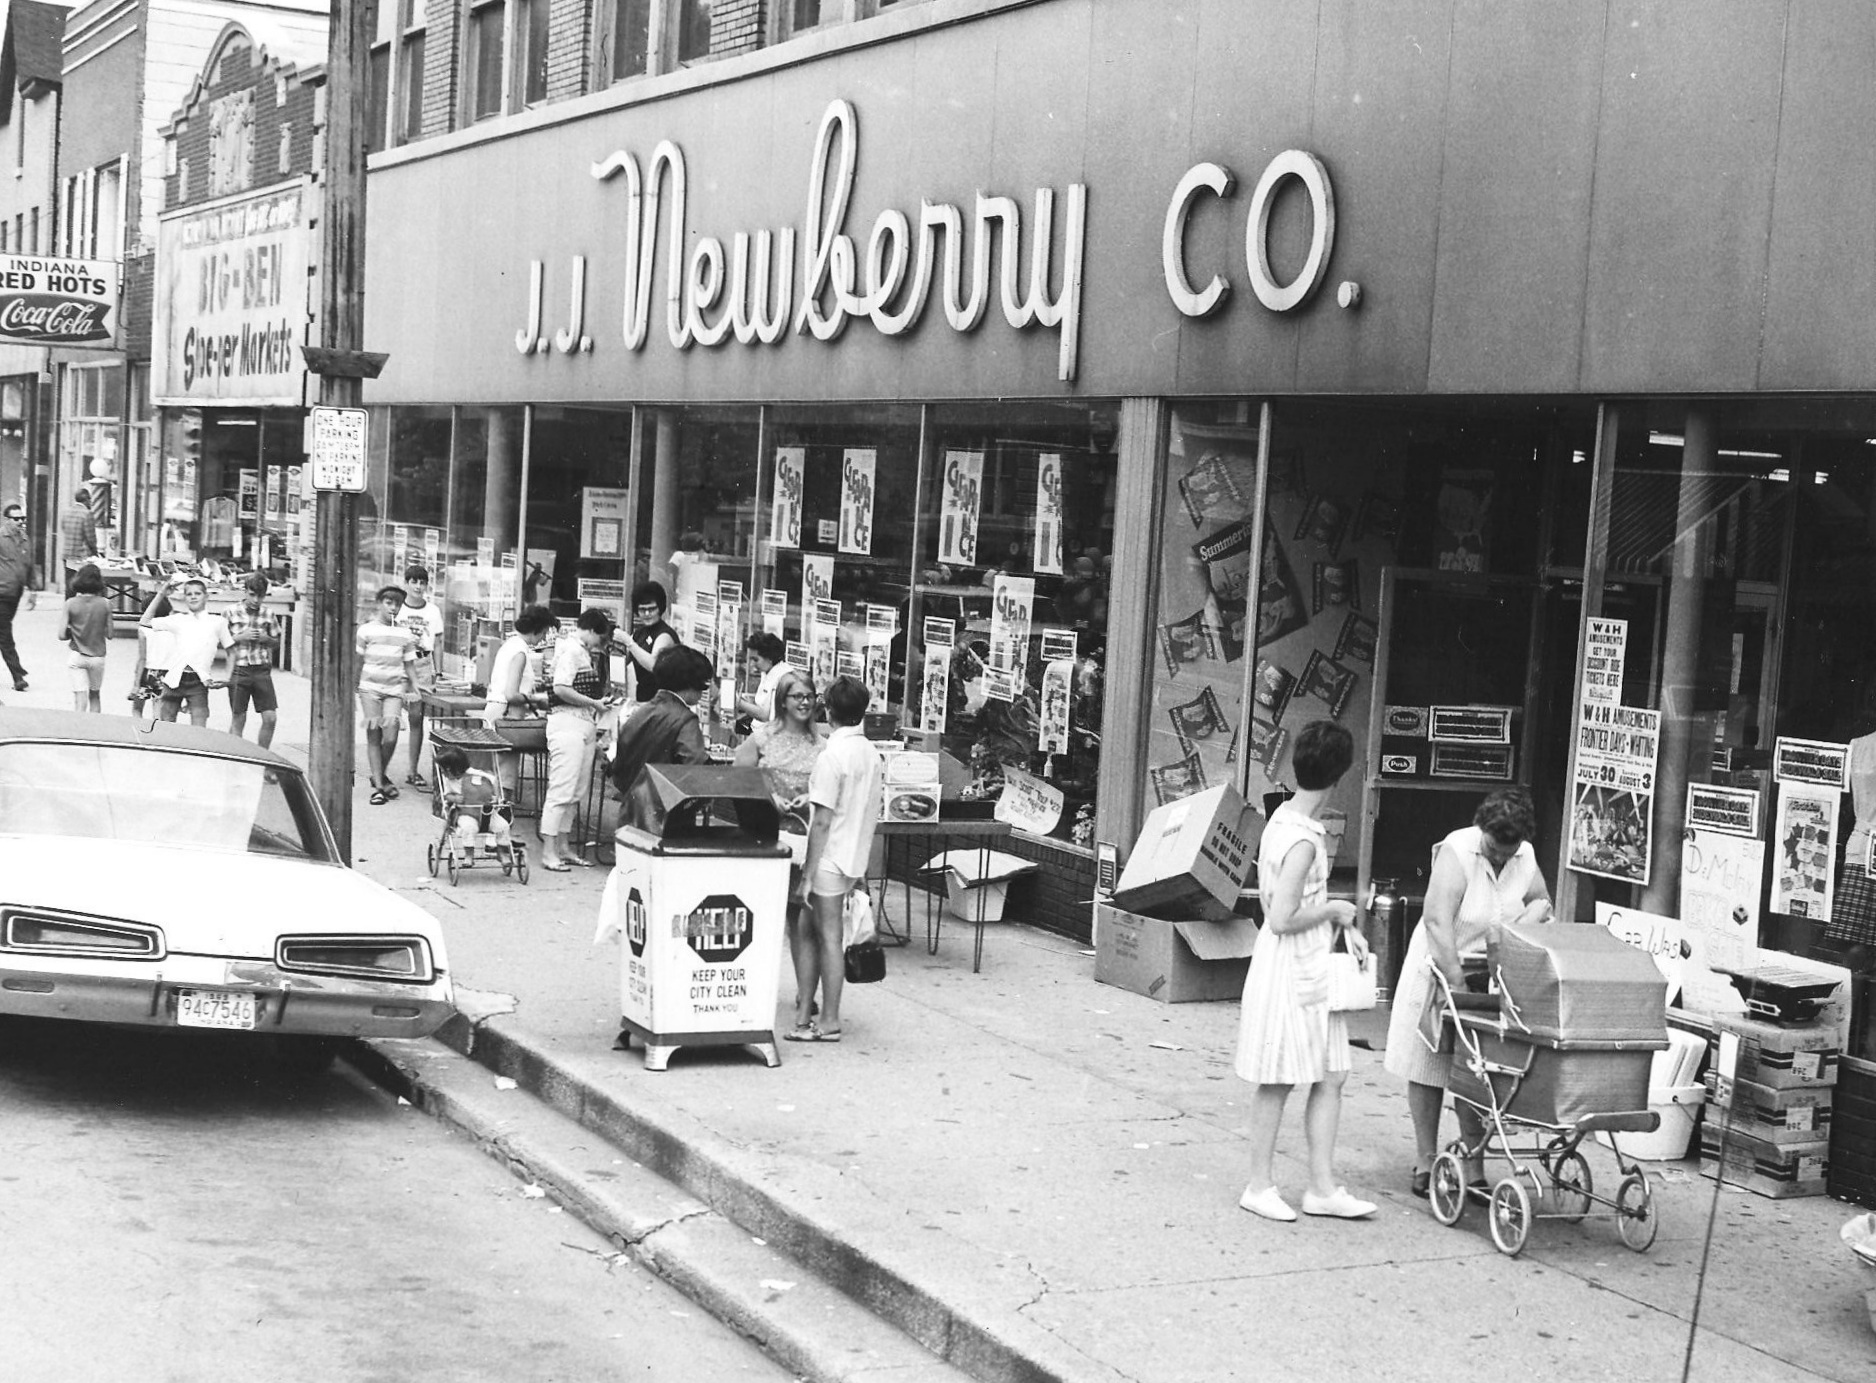 The J.J. Newberry Store, 1410 119th Street, in 1969. Next door is the Big Ben Shoe-Per Market at 1418 119th Street. And next to it is Indiana Red Hots at 1418 1/2. The hot dog stand was one of America's smallest restaurants. It was 45 feet long, but only seven feet wide, which was just enough room for the grill, the counter, the stools along the counter, and a small aisle to get from front to back. (Lovasko Studio photograph)